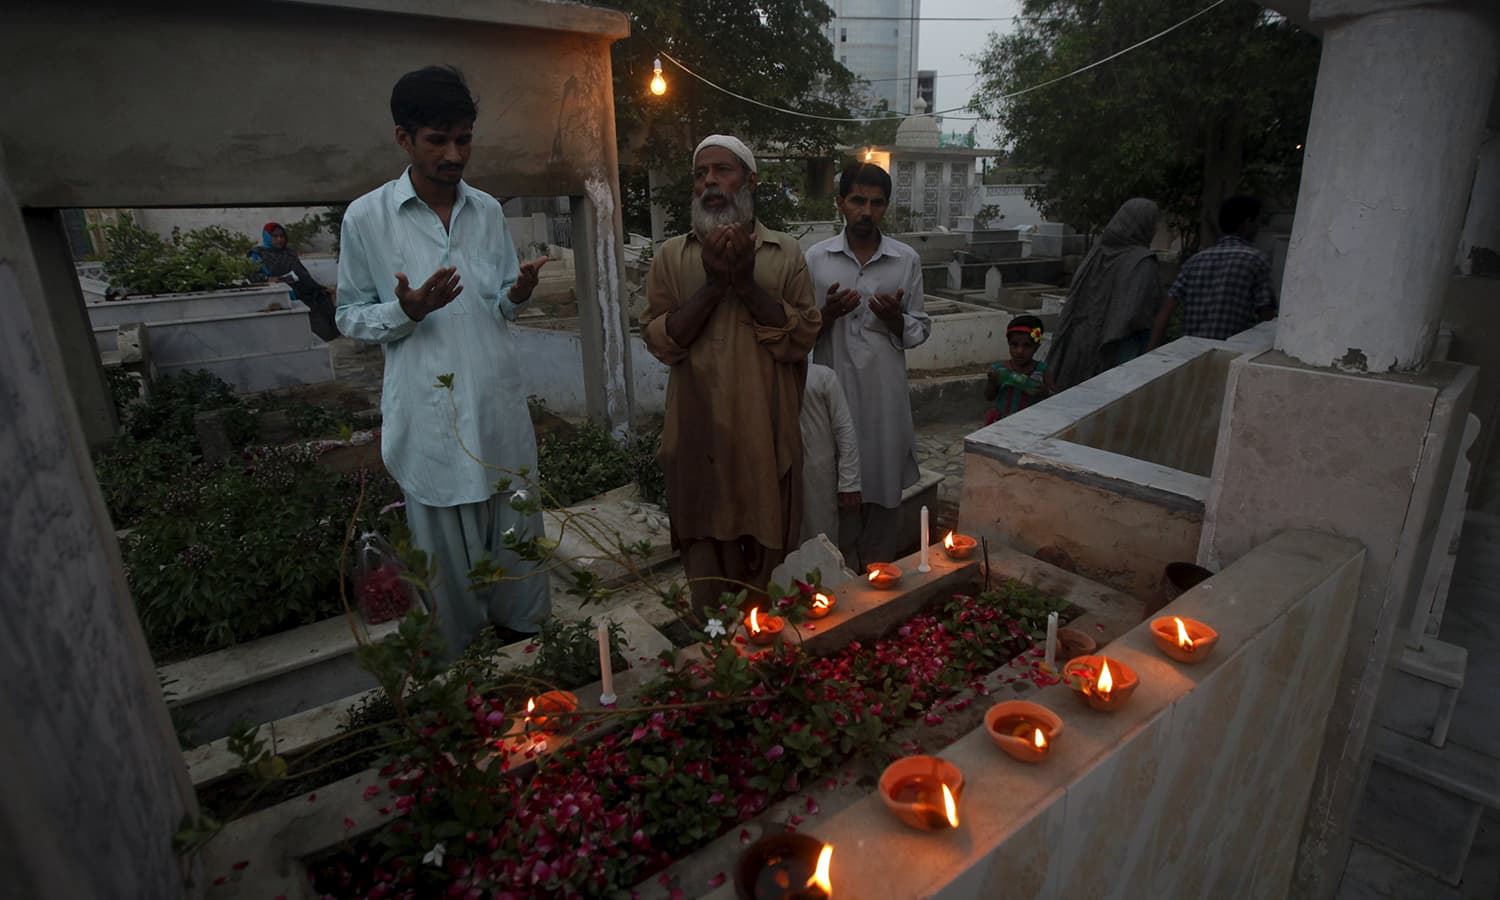 Men pray over the grave of their family member while observing the Shab-e-Barat festival at a cemetery. ─ Reuters